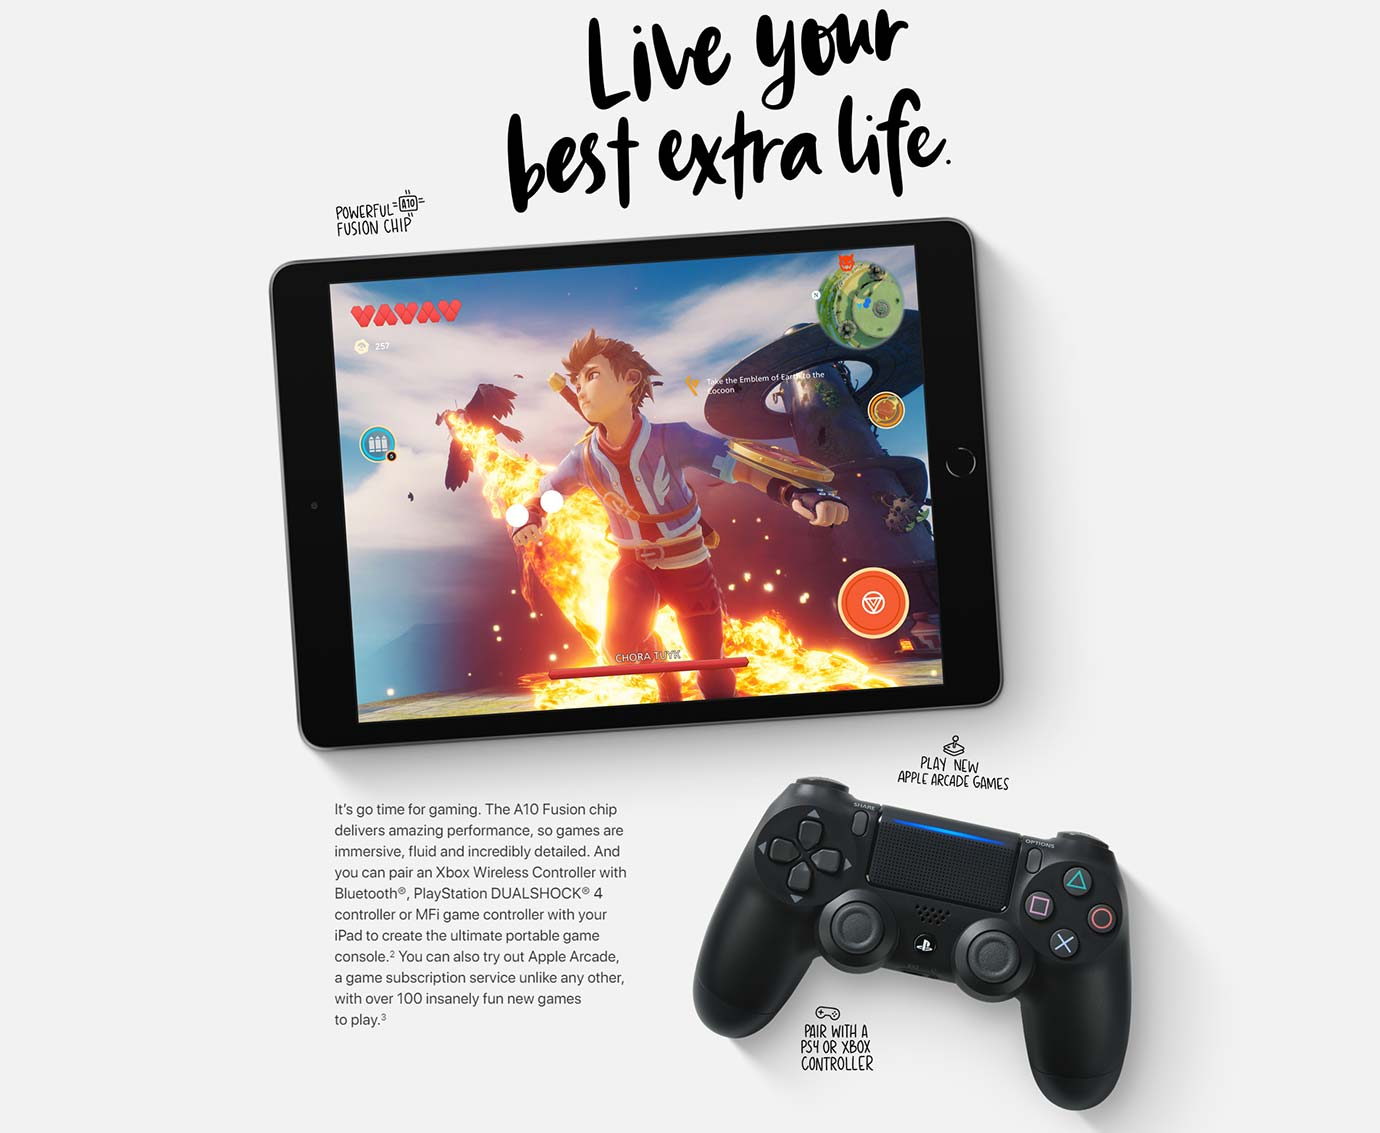 Live your best extra life